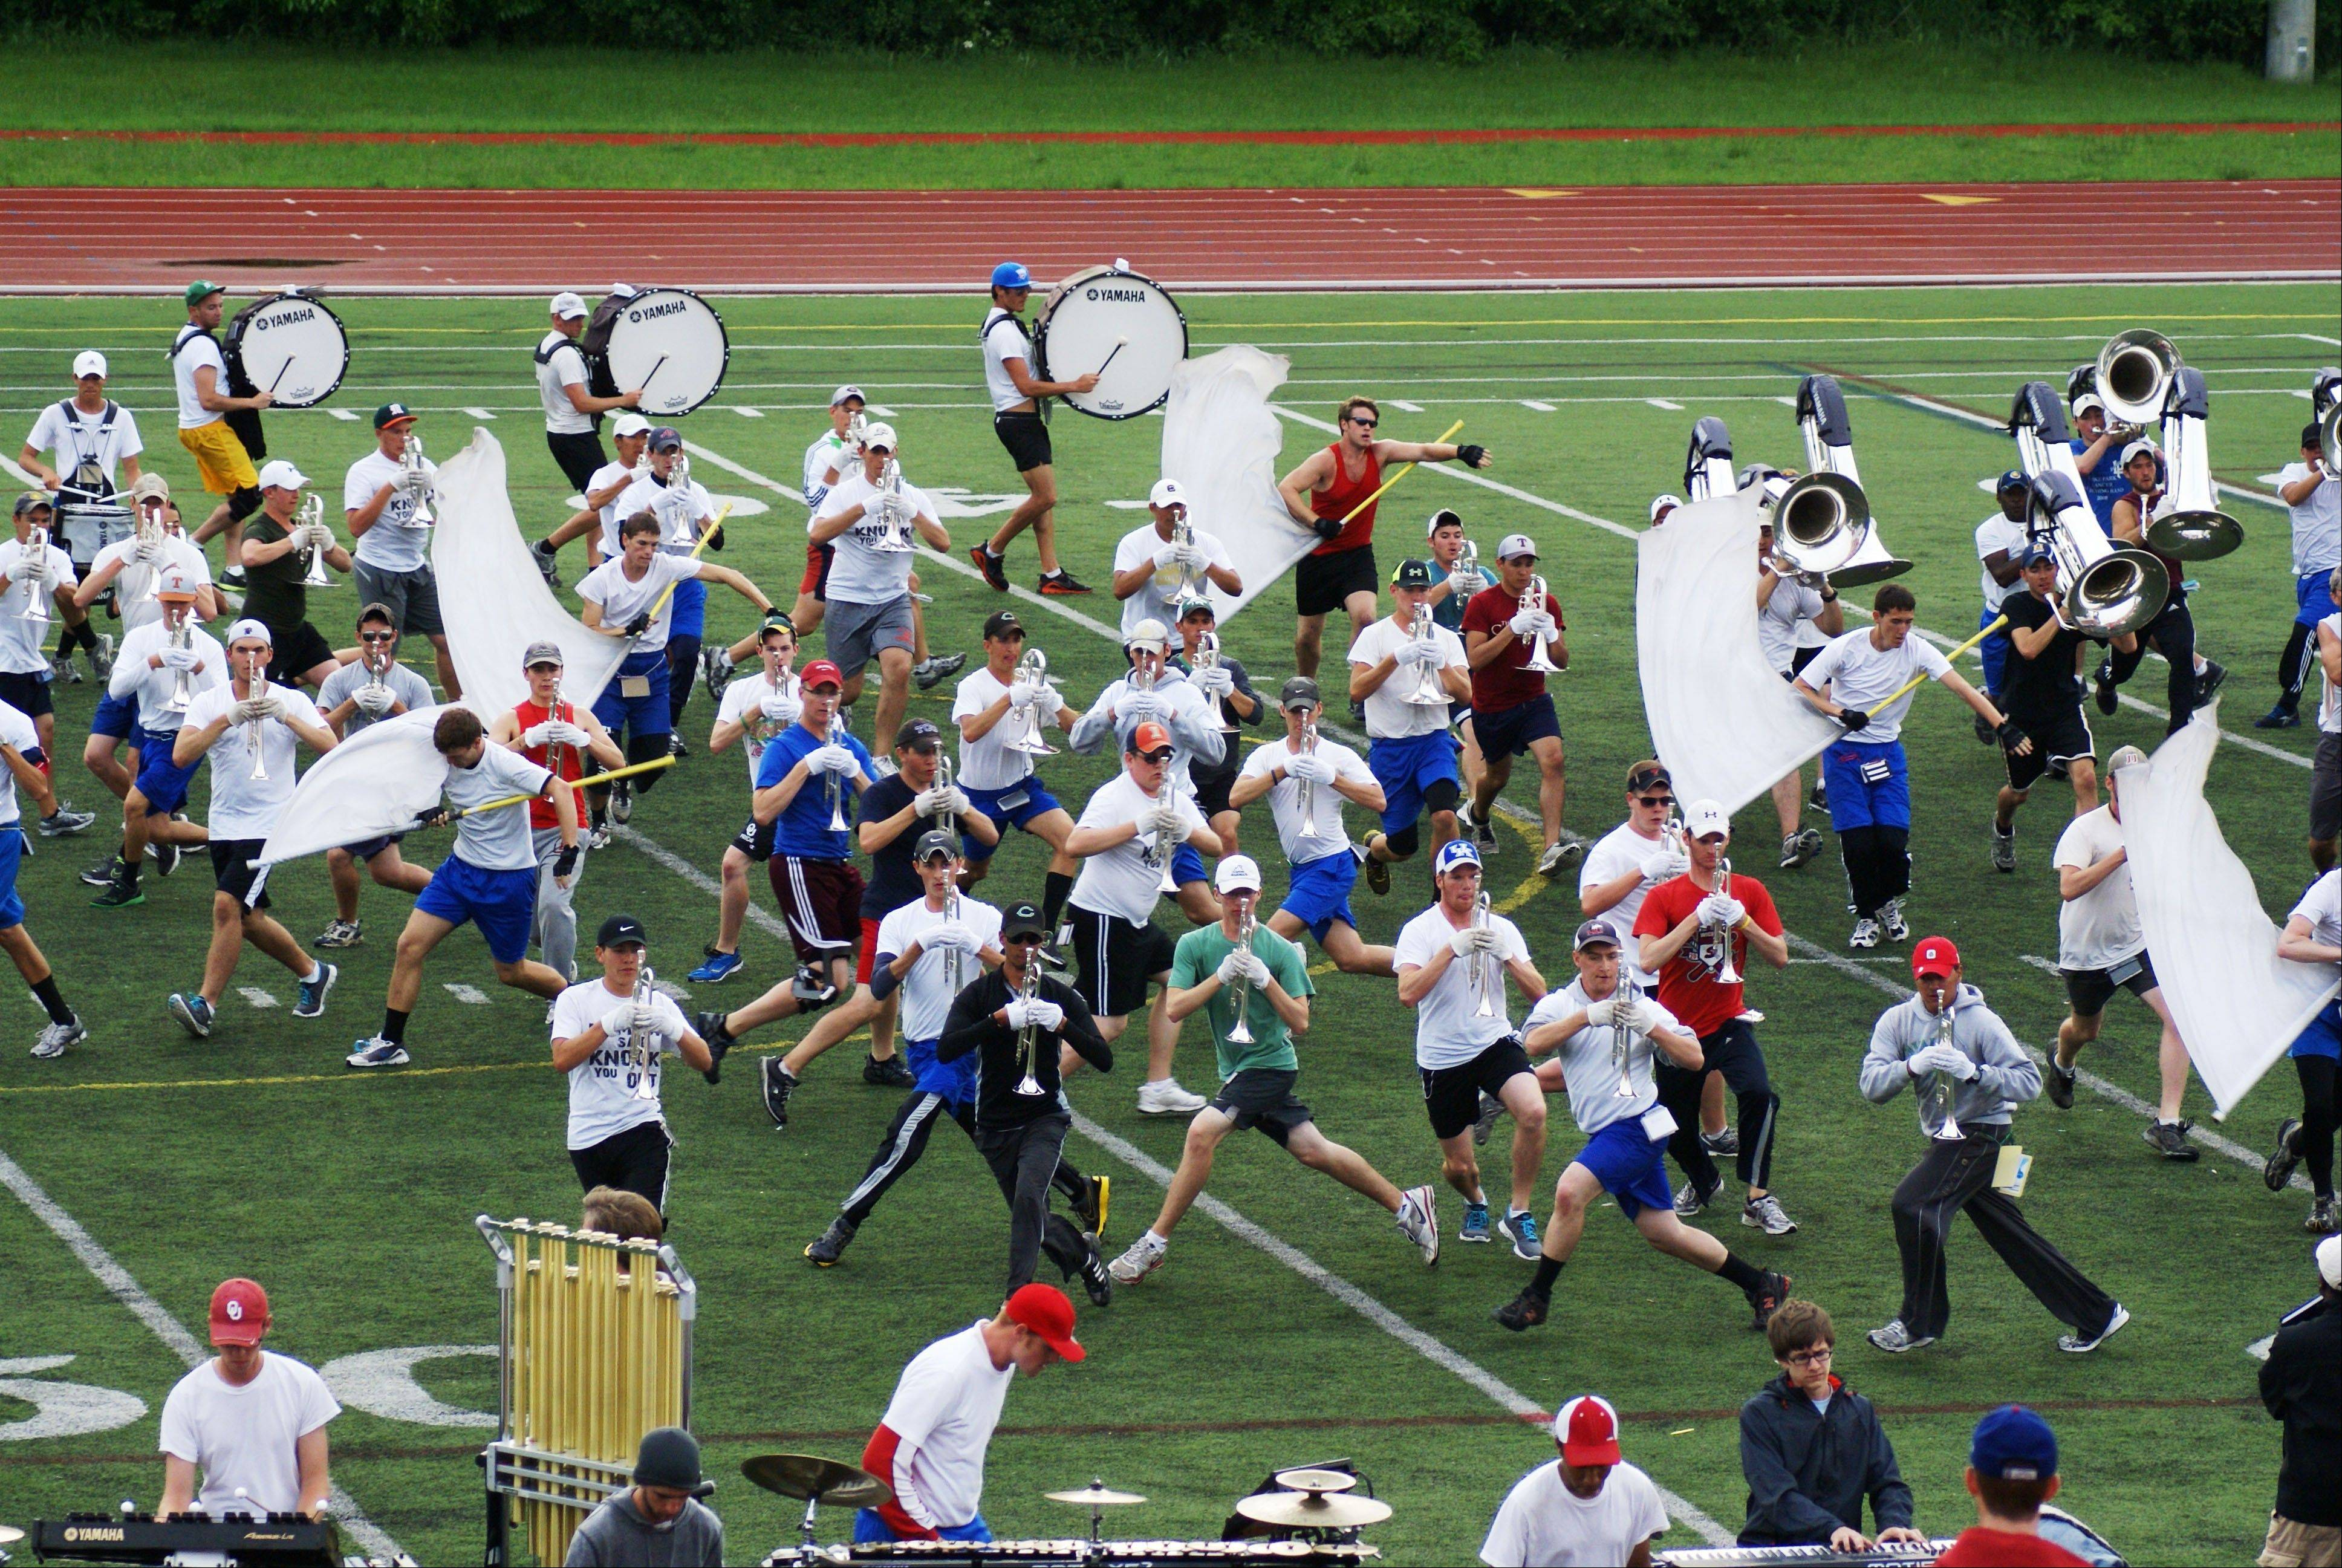 The Cavaliers of Rosemont spent more than two weeks in May at Benedictine University as the corps trained for the 2011 season.